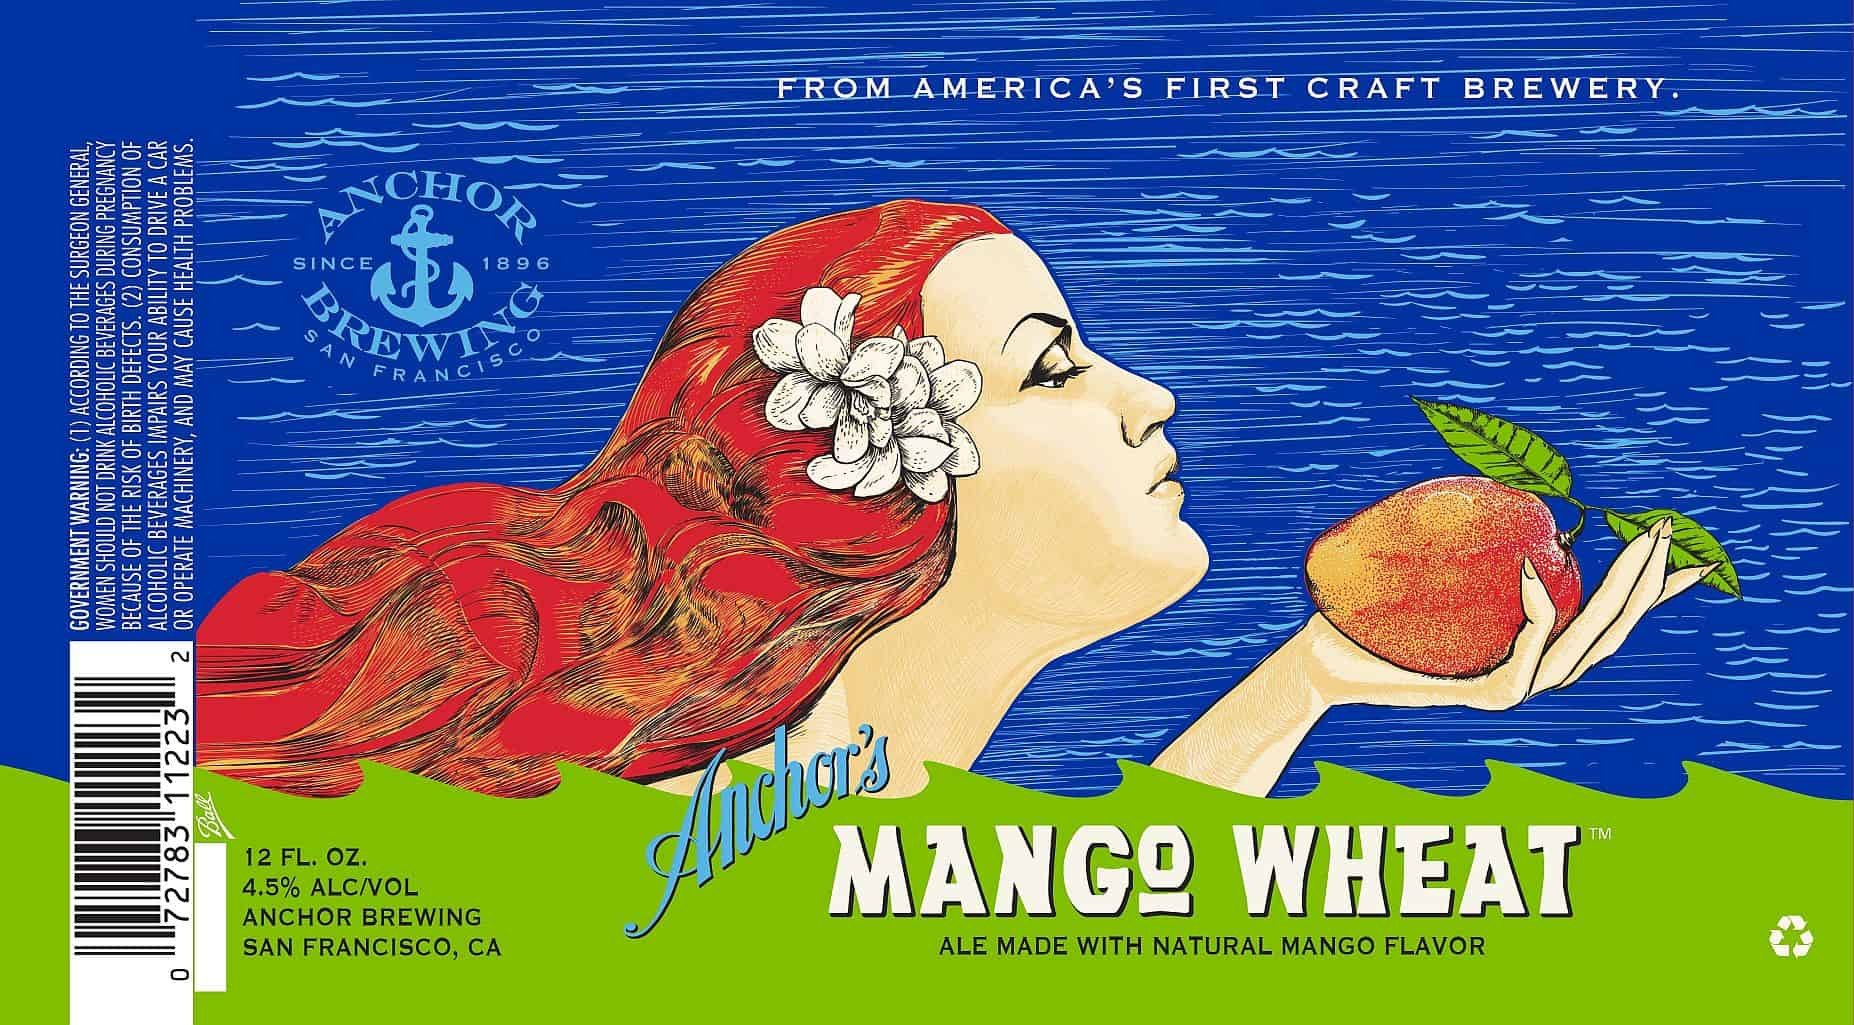 Anchor Mango Wheat – shower beer